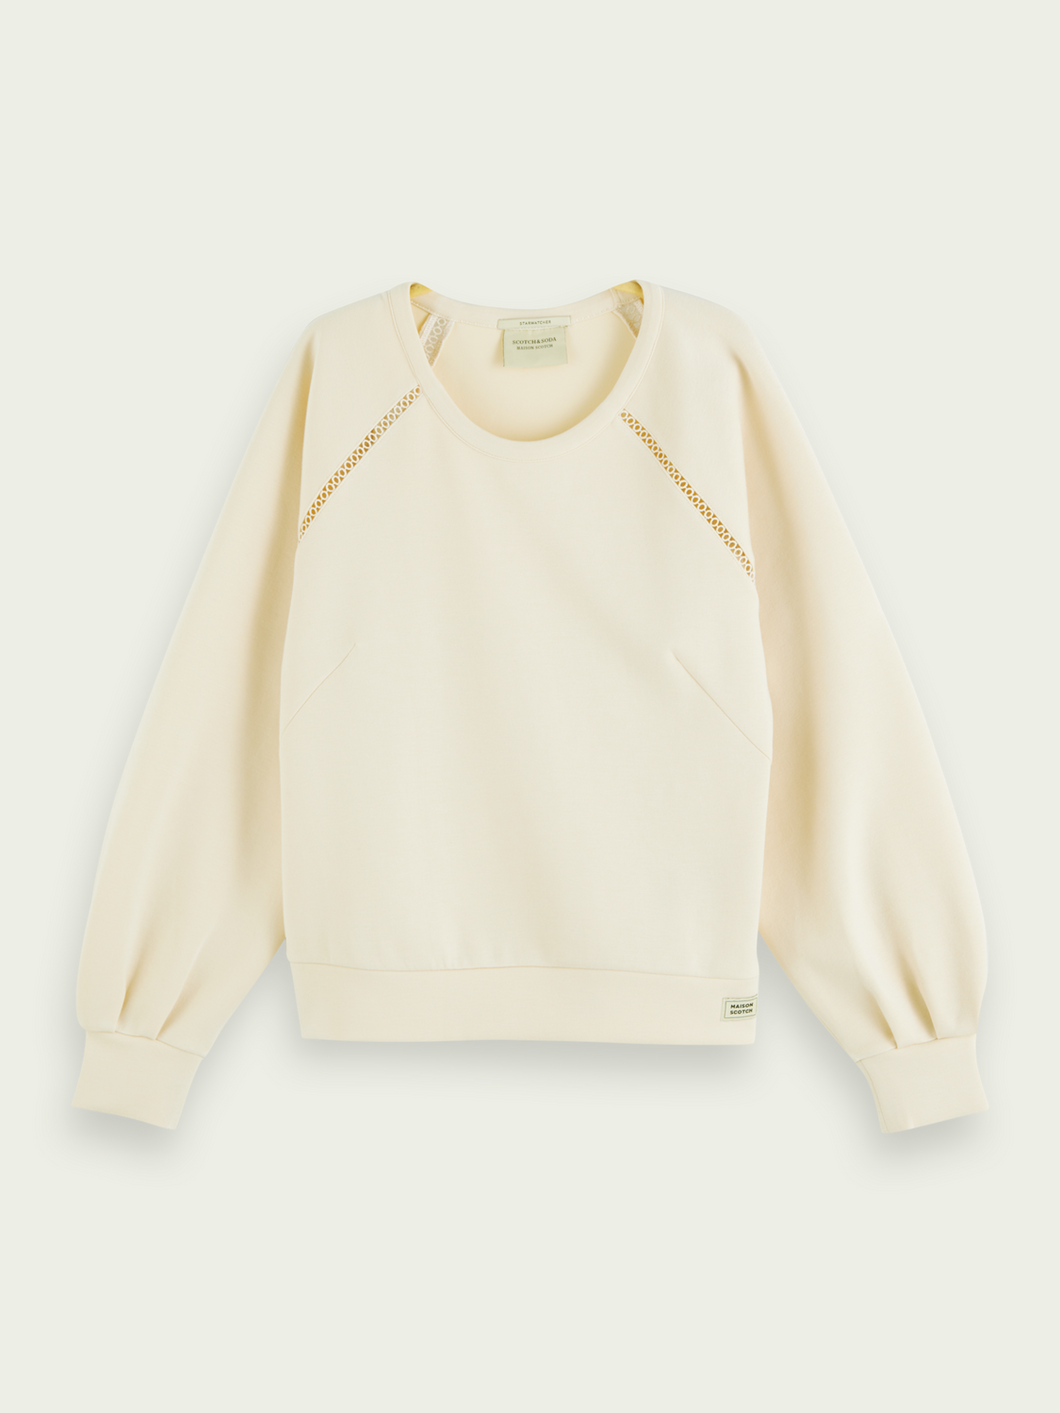 SCOTCH & SODA SOFT TAPE DETAIL CREWNECK SWEATER IVORY